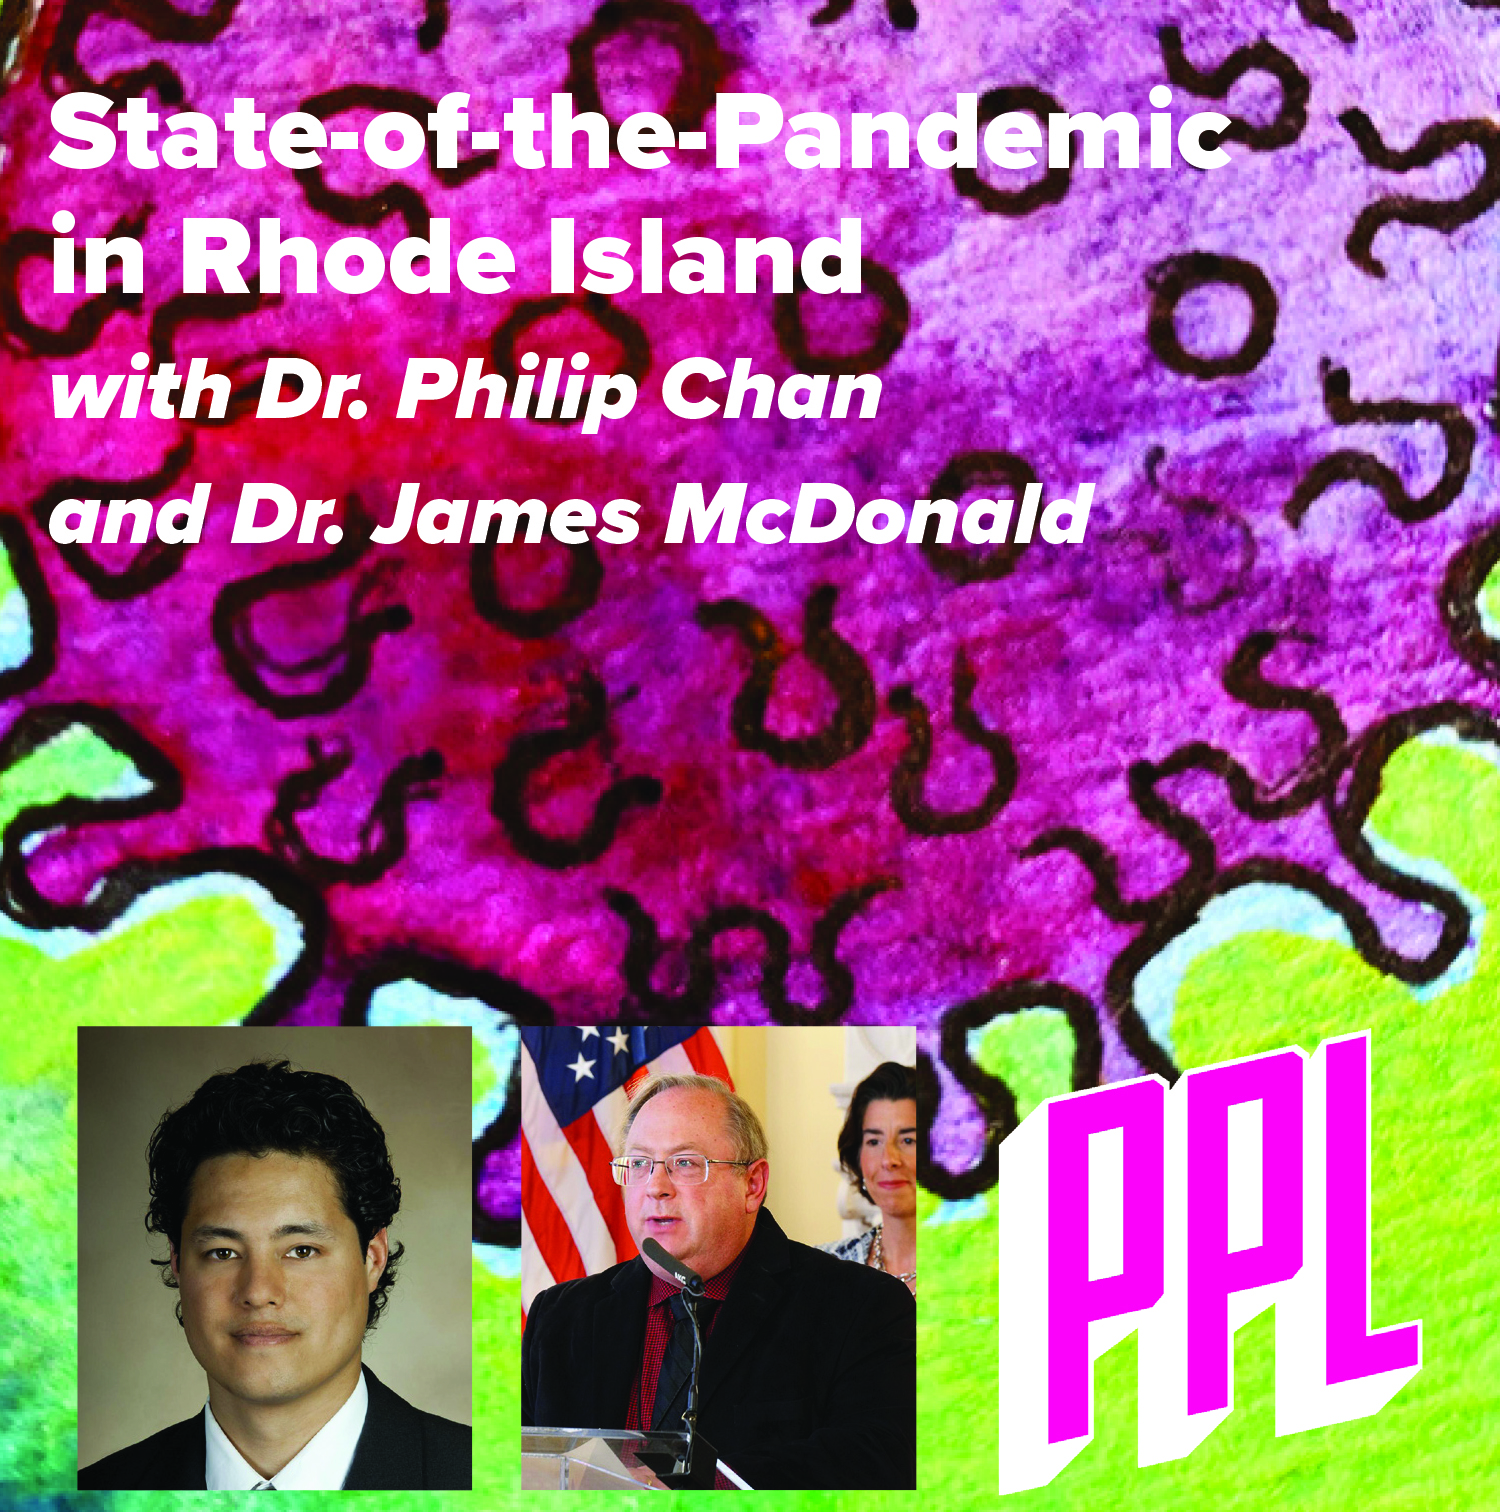 State-of-the-Pandemic in RI